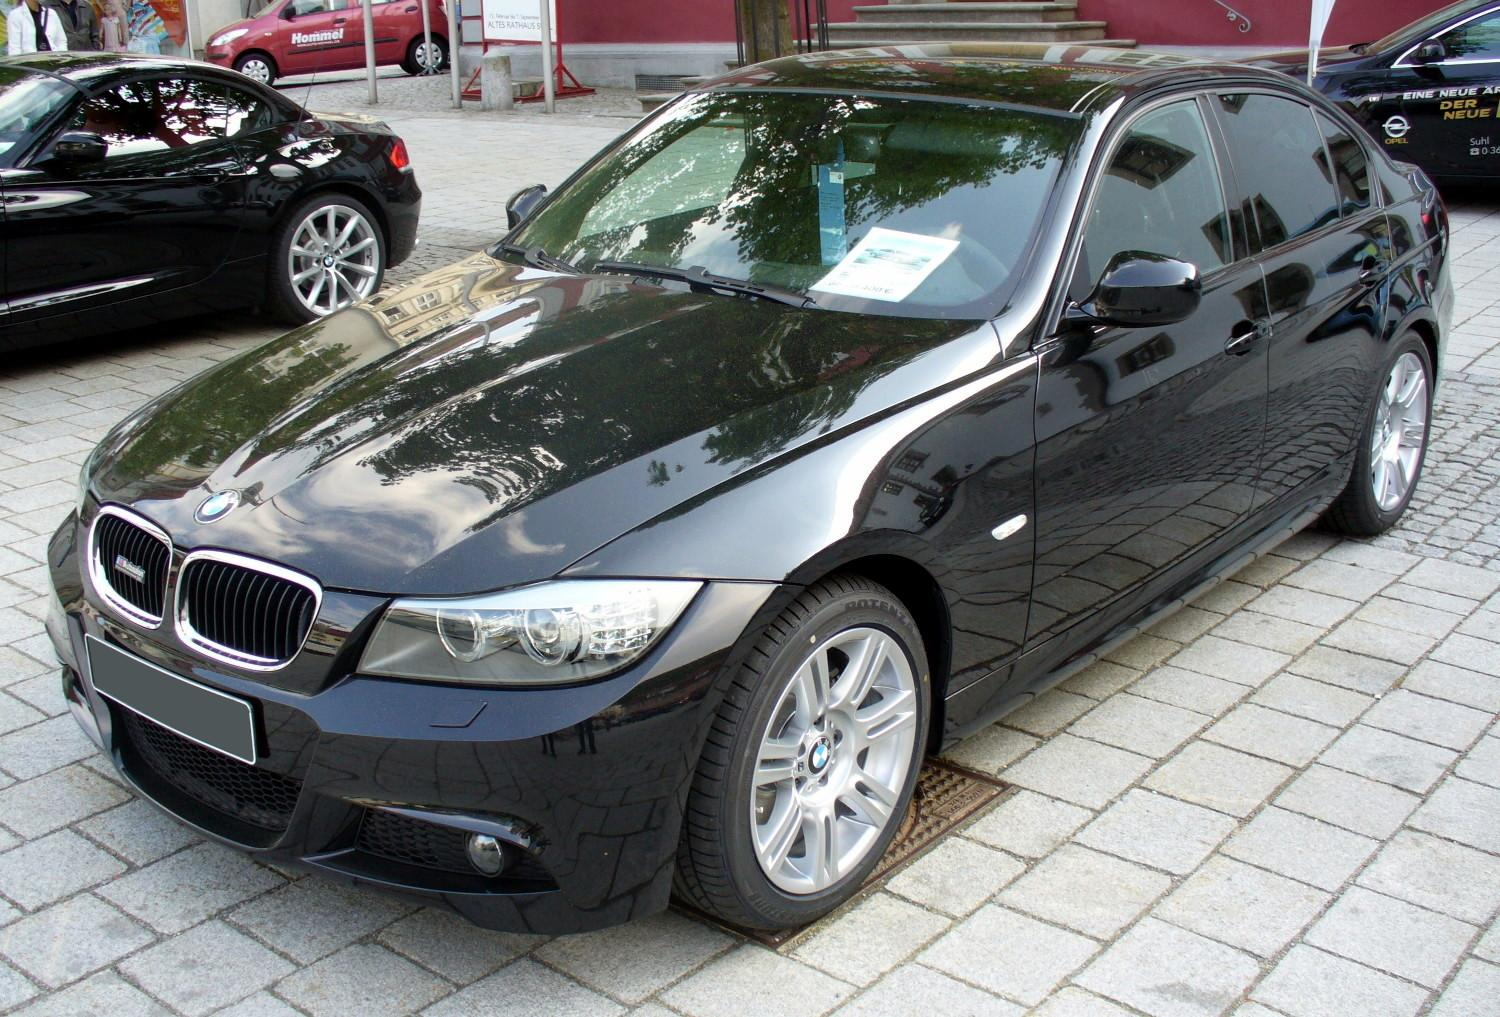 file bmw e90 320d m sport facelift jpg wikimedia commons rh commons wikimedia org bmw 320d e90 owners manual free download bmw e90 320d owners manual